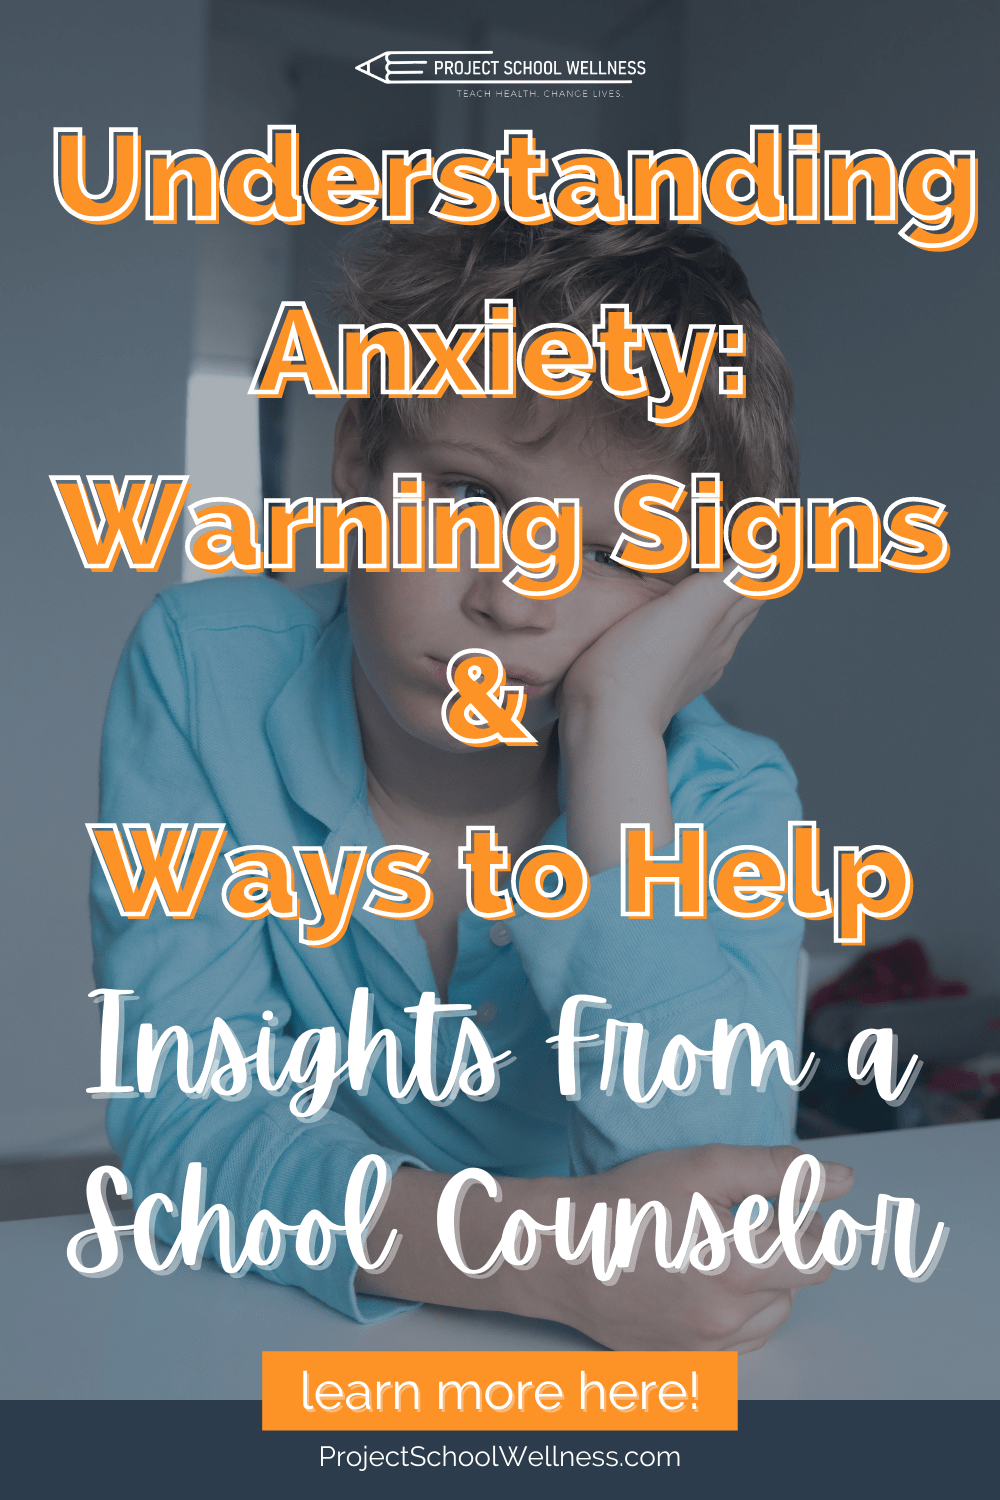 Understanding Anxiety_ Warning Signs _ Ways to Help - a Project School Wellness blog